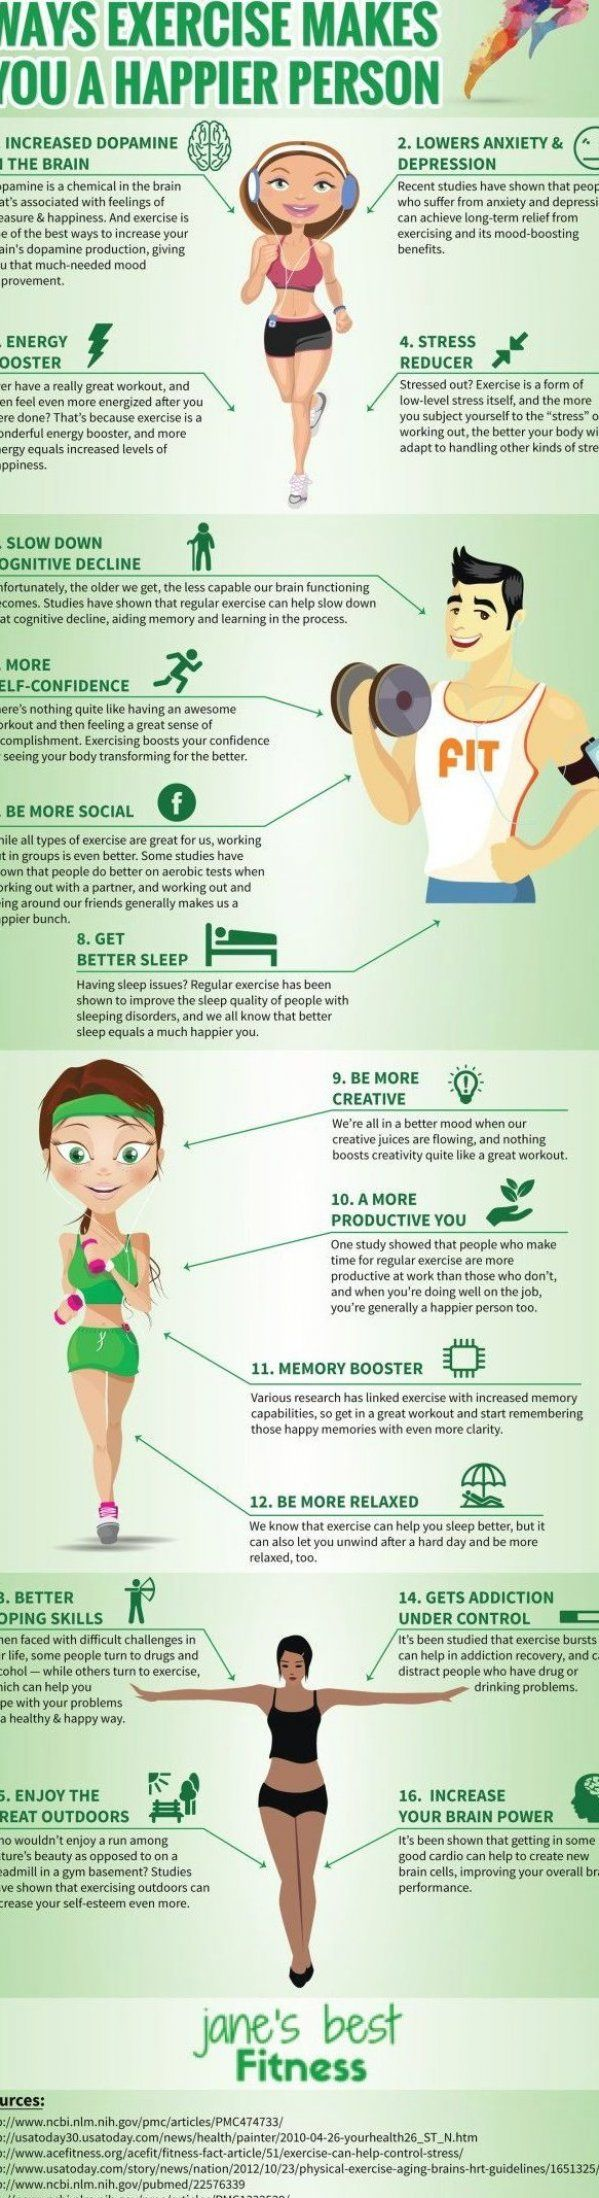 16 Ways Exercise Makes You Happier  Infographic  #fitness #workout #fitnesstip #health